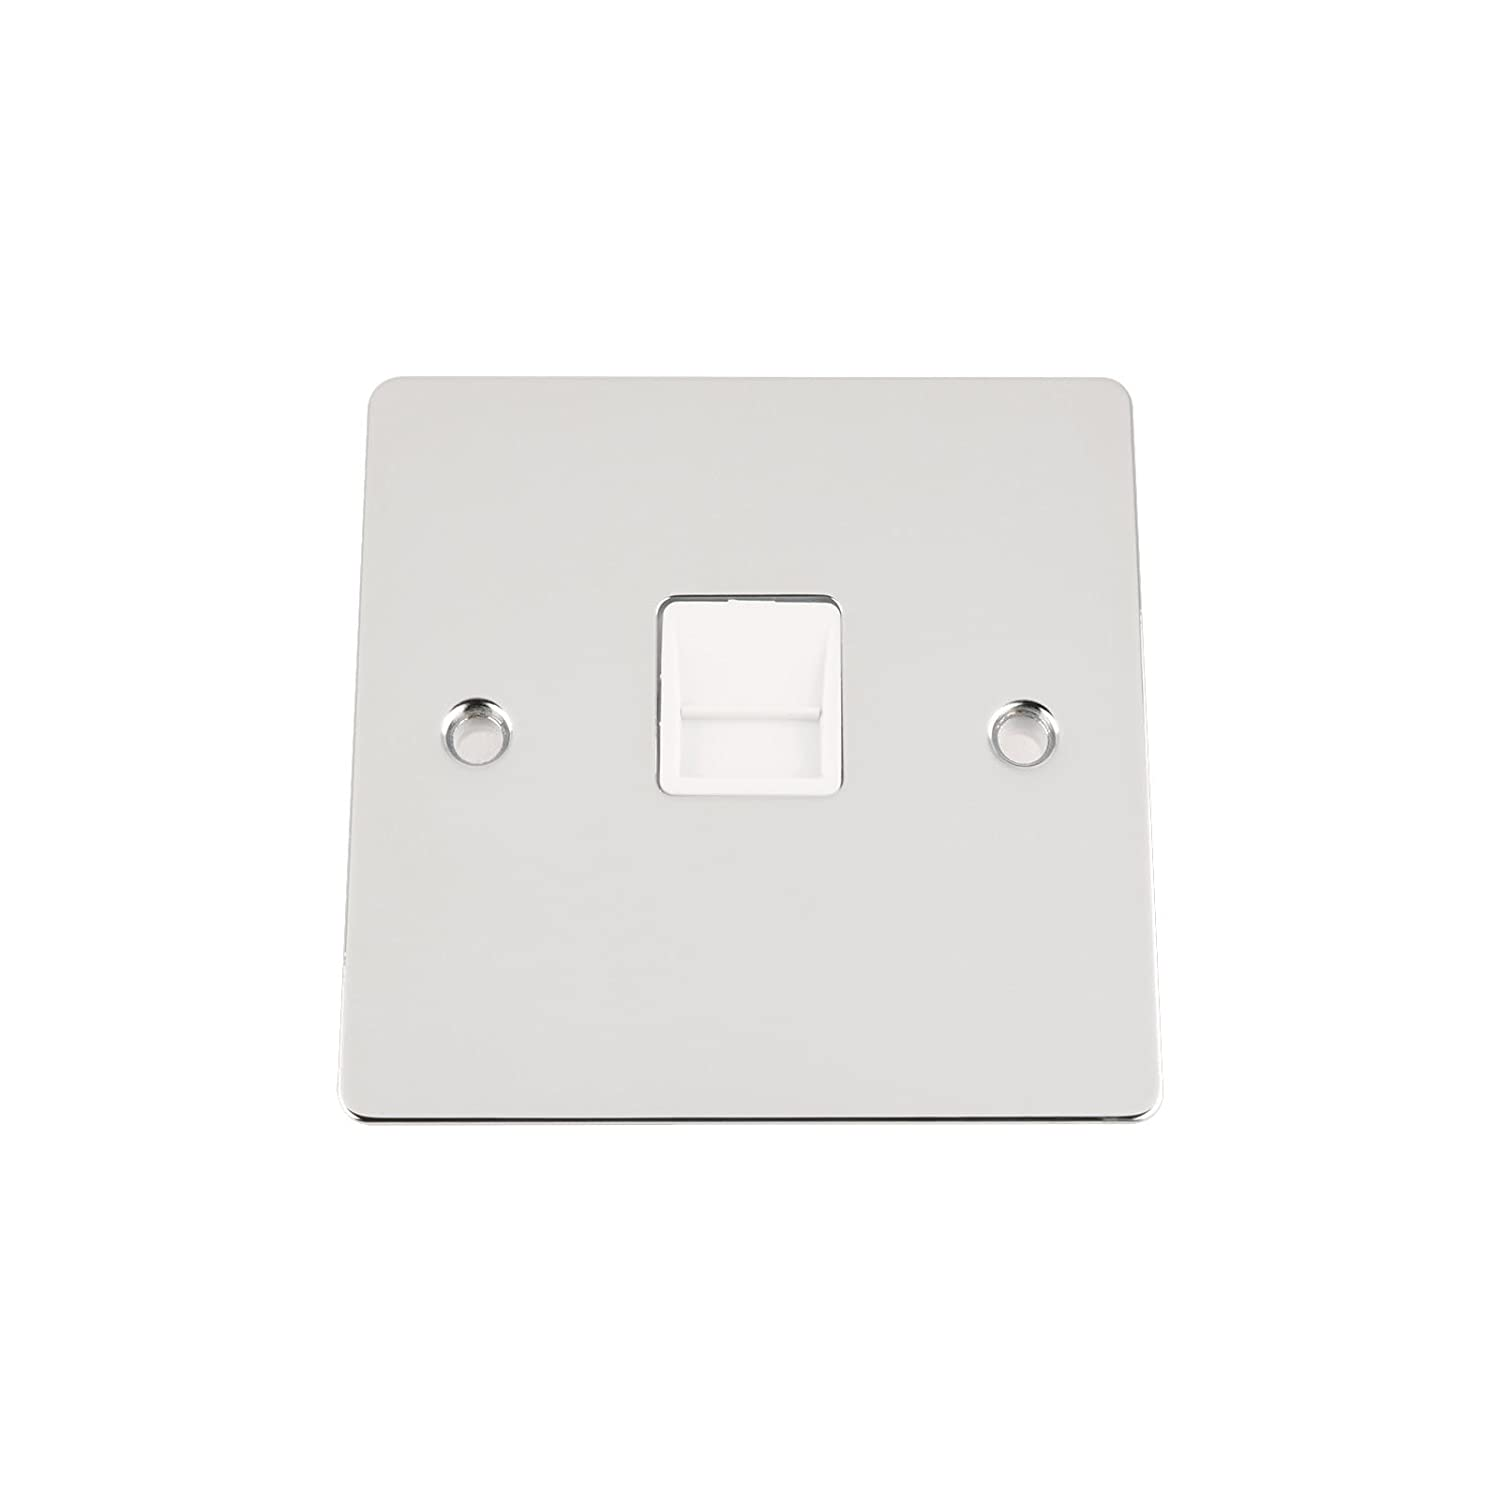 A5 Products - Embellecedor para Interruptor de Pared (Acabado Cromado Brillante): Amazon.es: Bricolaje y herramientas